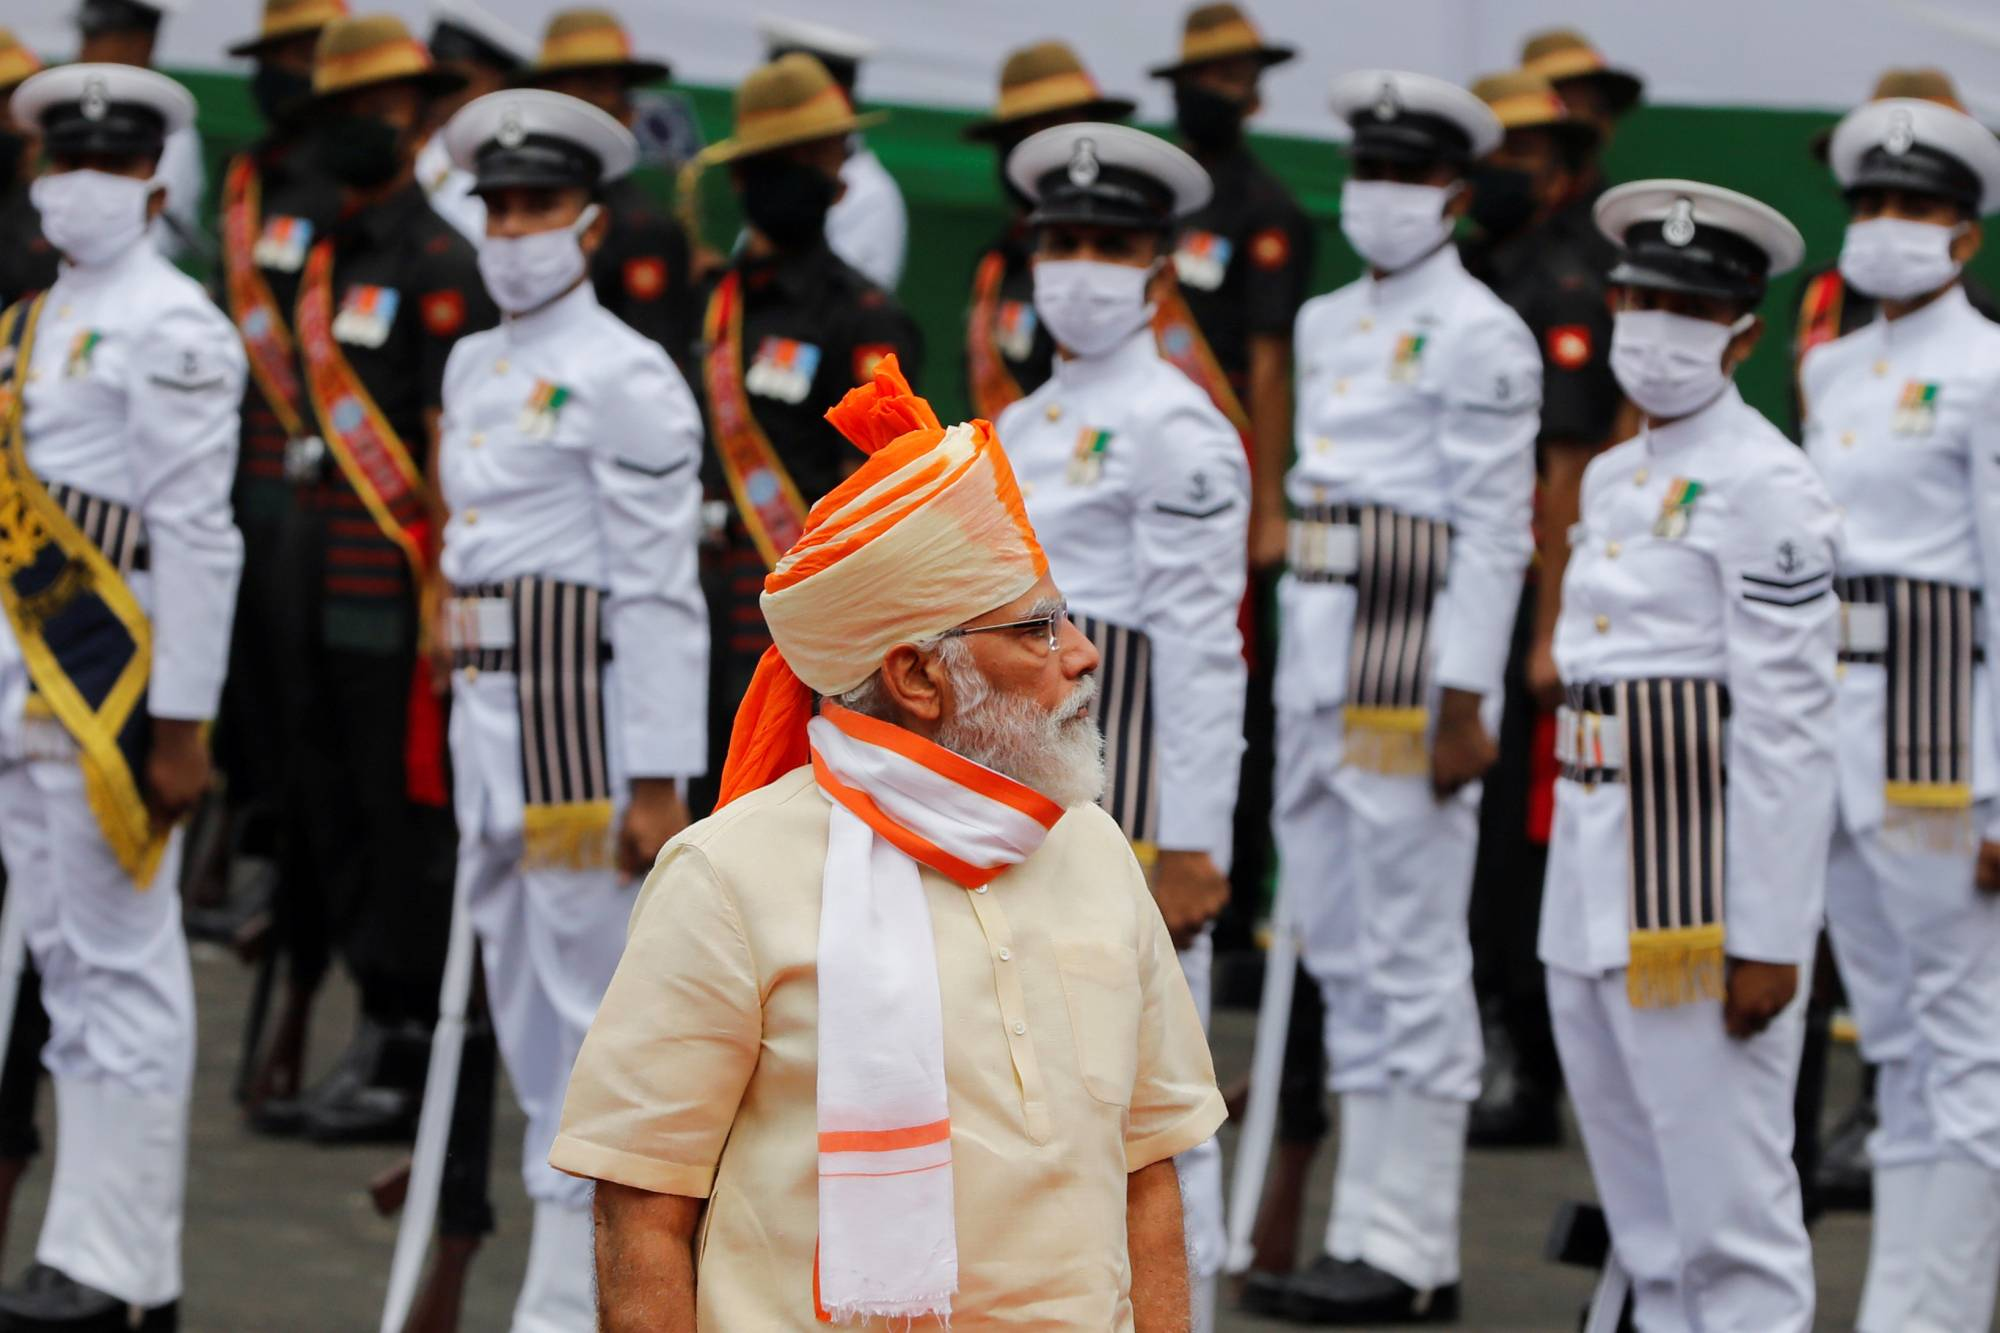 Indian Prime Minister Narendra Modi inspects an honor guard during Independence Day celebrations at the historic Red Fort in New Delhi in August 2020. | REUTERS